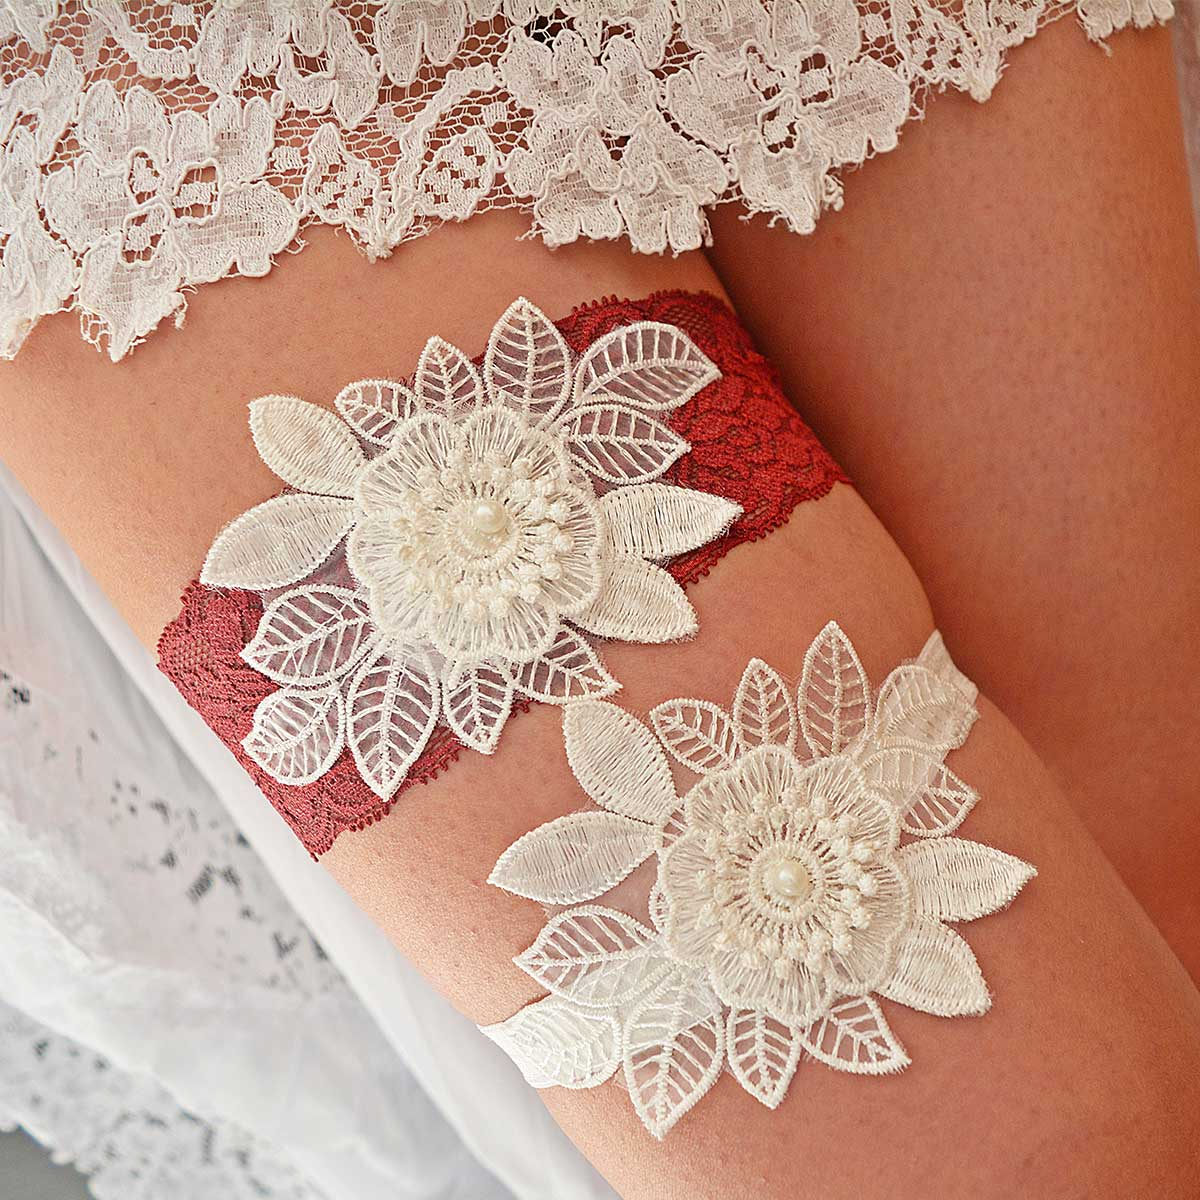 Burgundy Garter With 3D White Flower Applique & Pearls